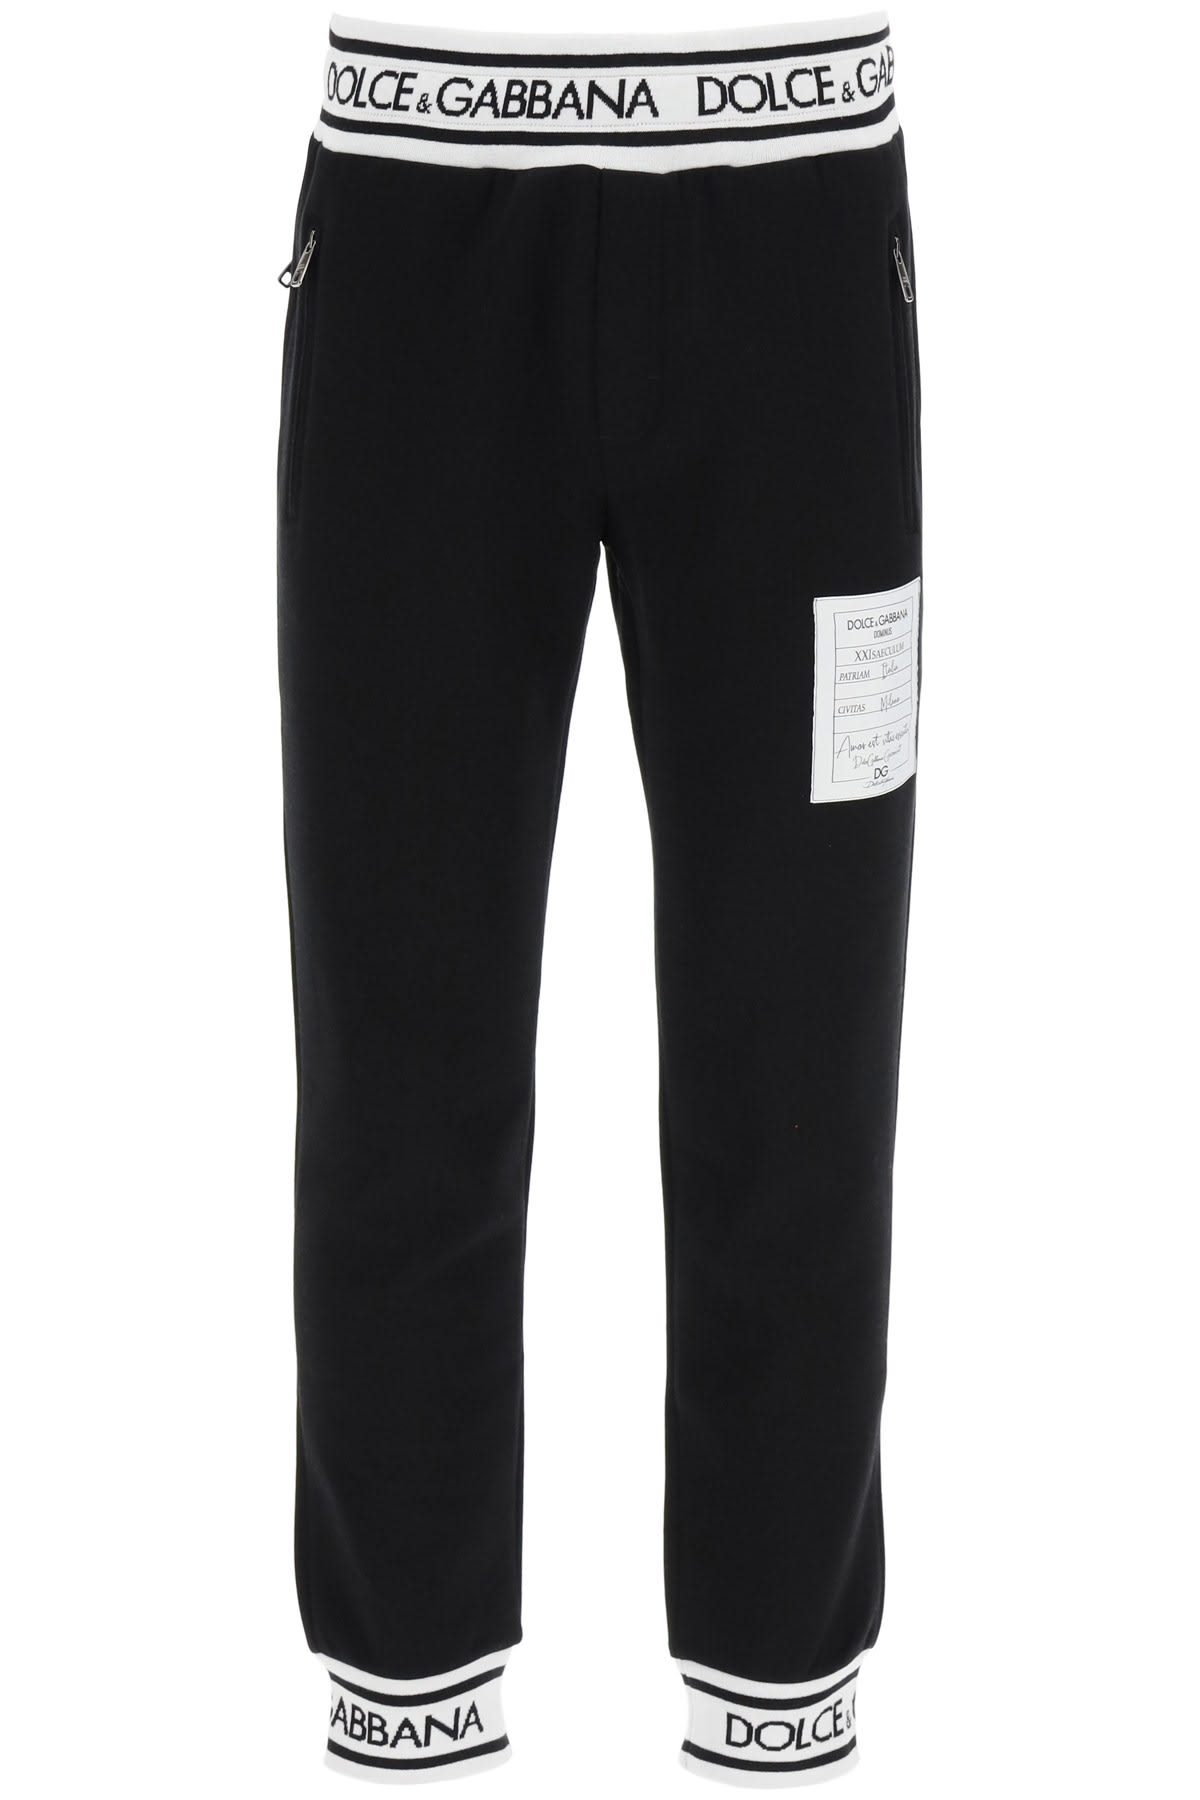 DOLCE & GABBANA JOGGING PANTS WITH LOGO EMBROIDERY